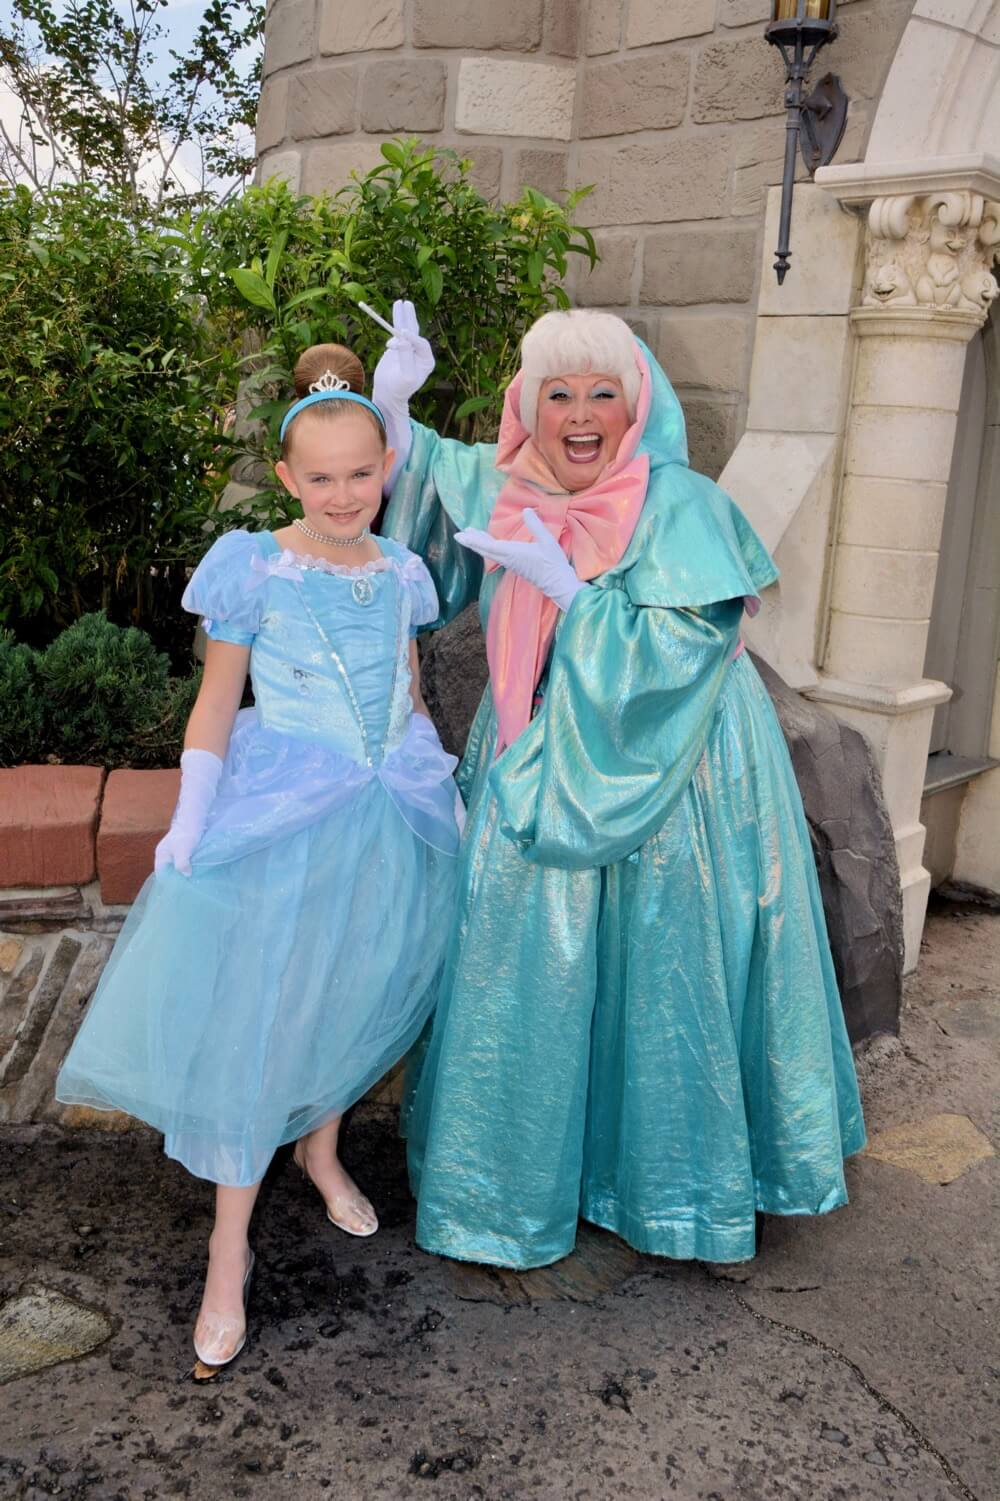 The Royal Treatment at Bibbidi Bobbidi Boutique